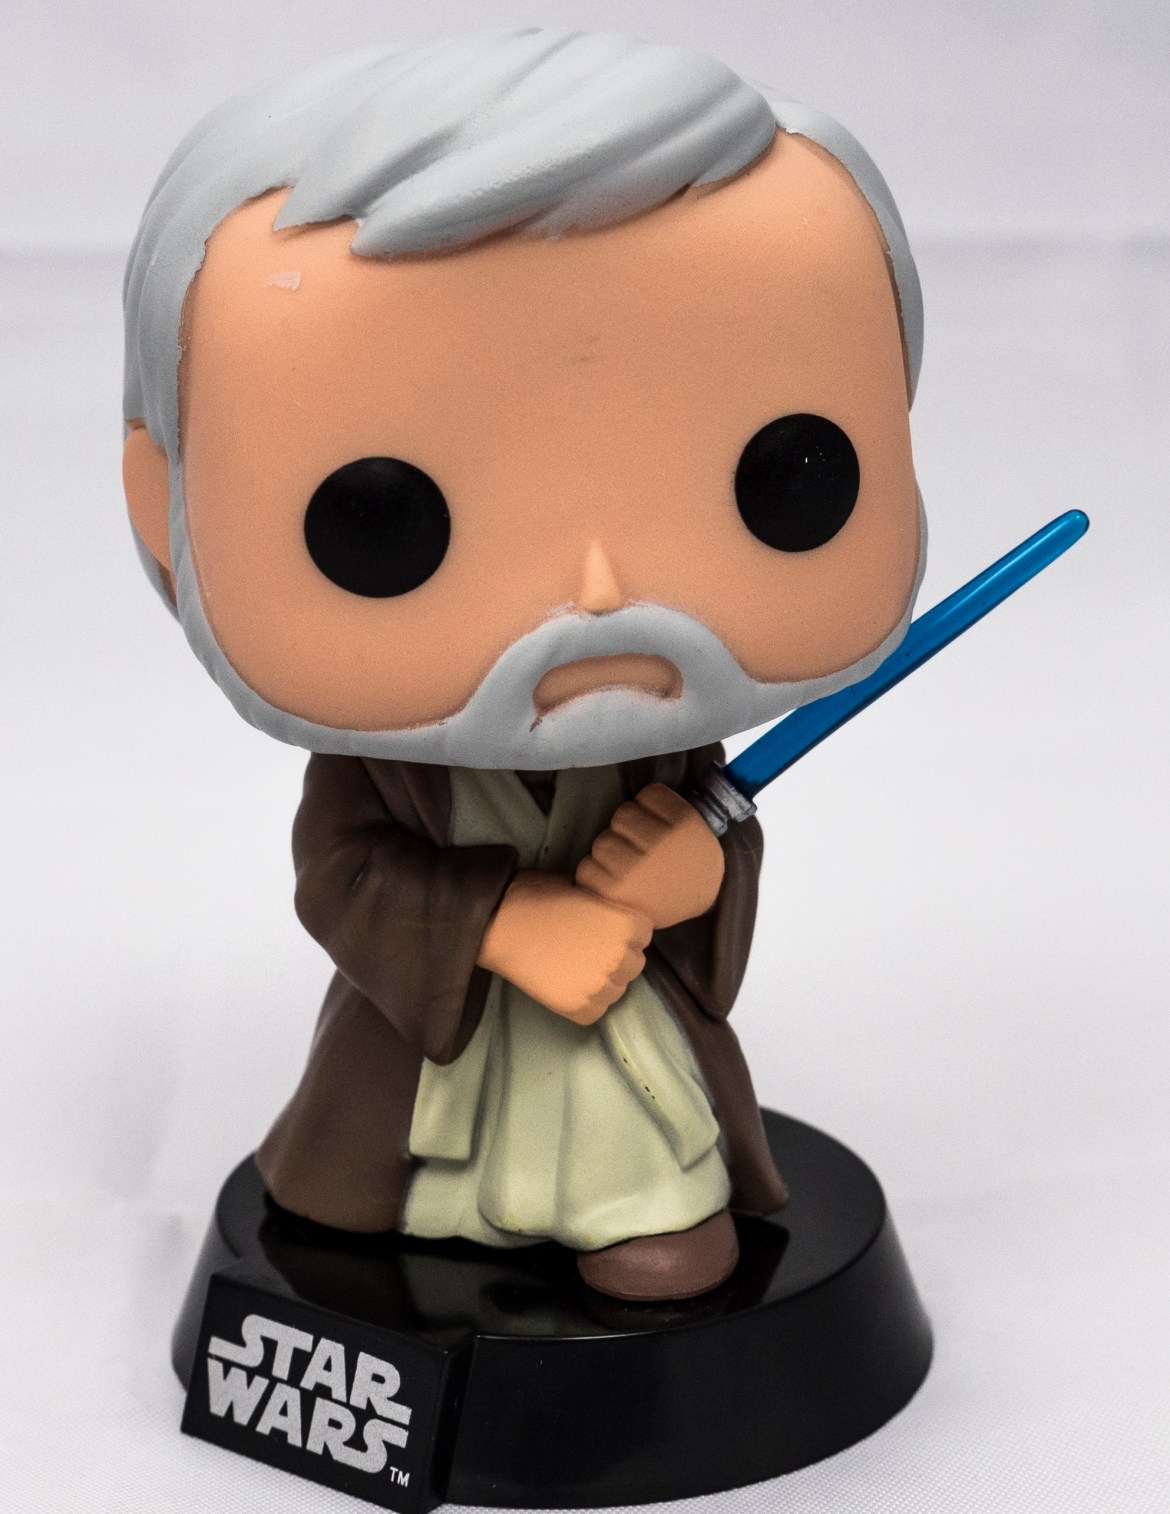 Smuggler's Bounty March 2016 Ben Kenobi Pop Figure